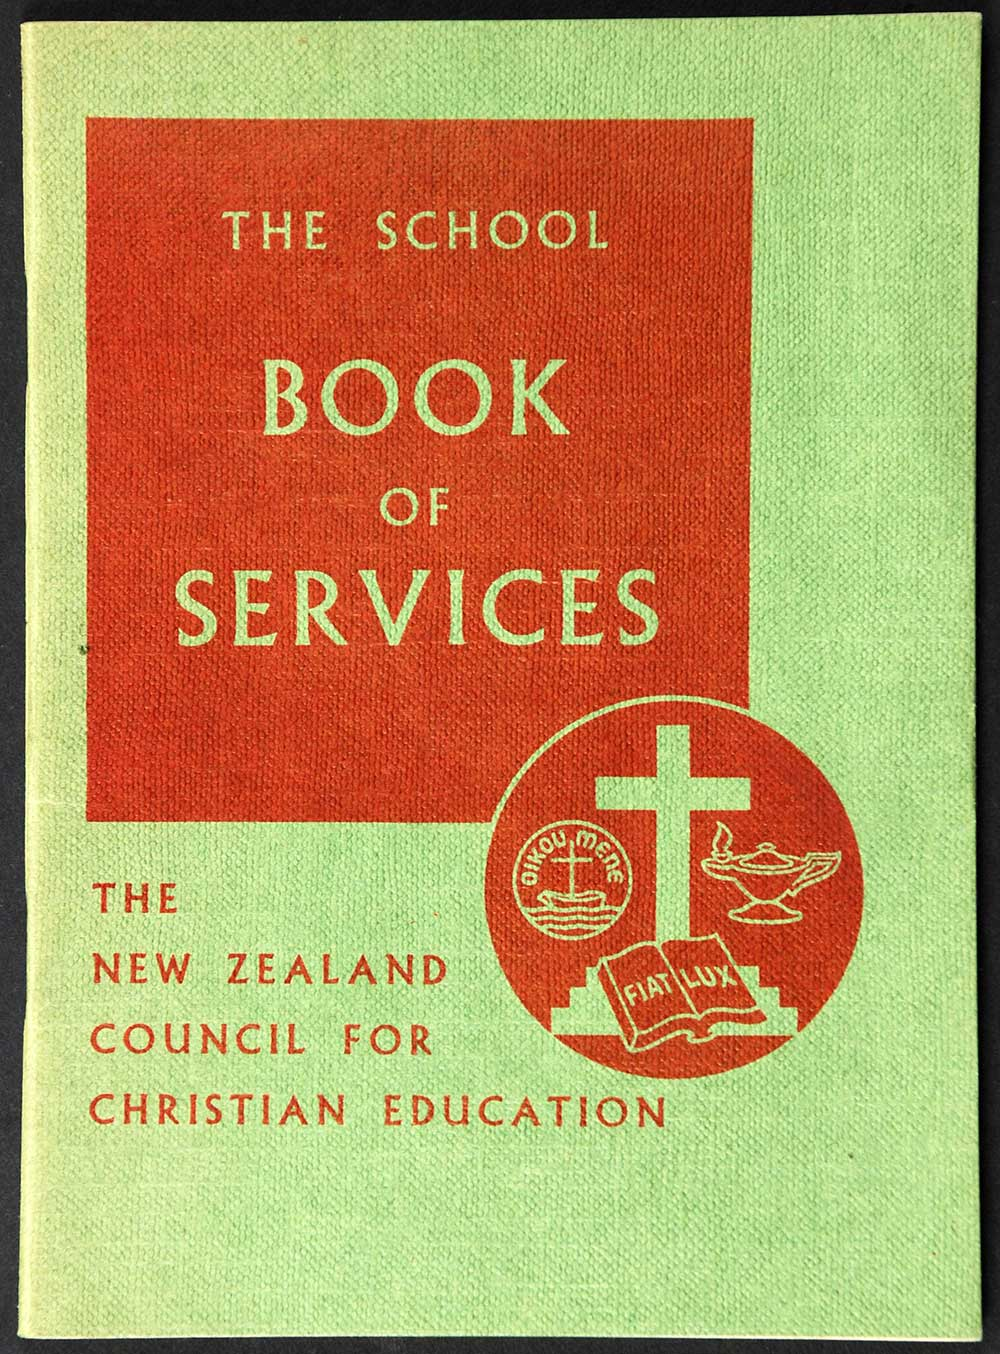 New Zealand Council for Christian Education. <em>The school book of services.</em> Revised edition. Wellington: A.H. & A.W. Reed, 1962.